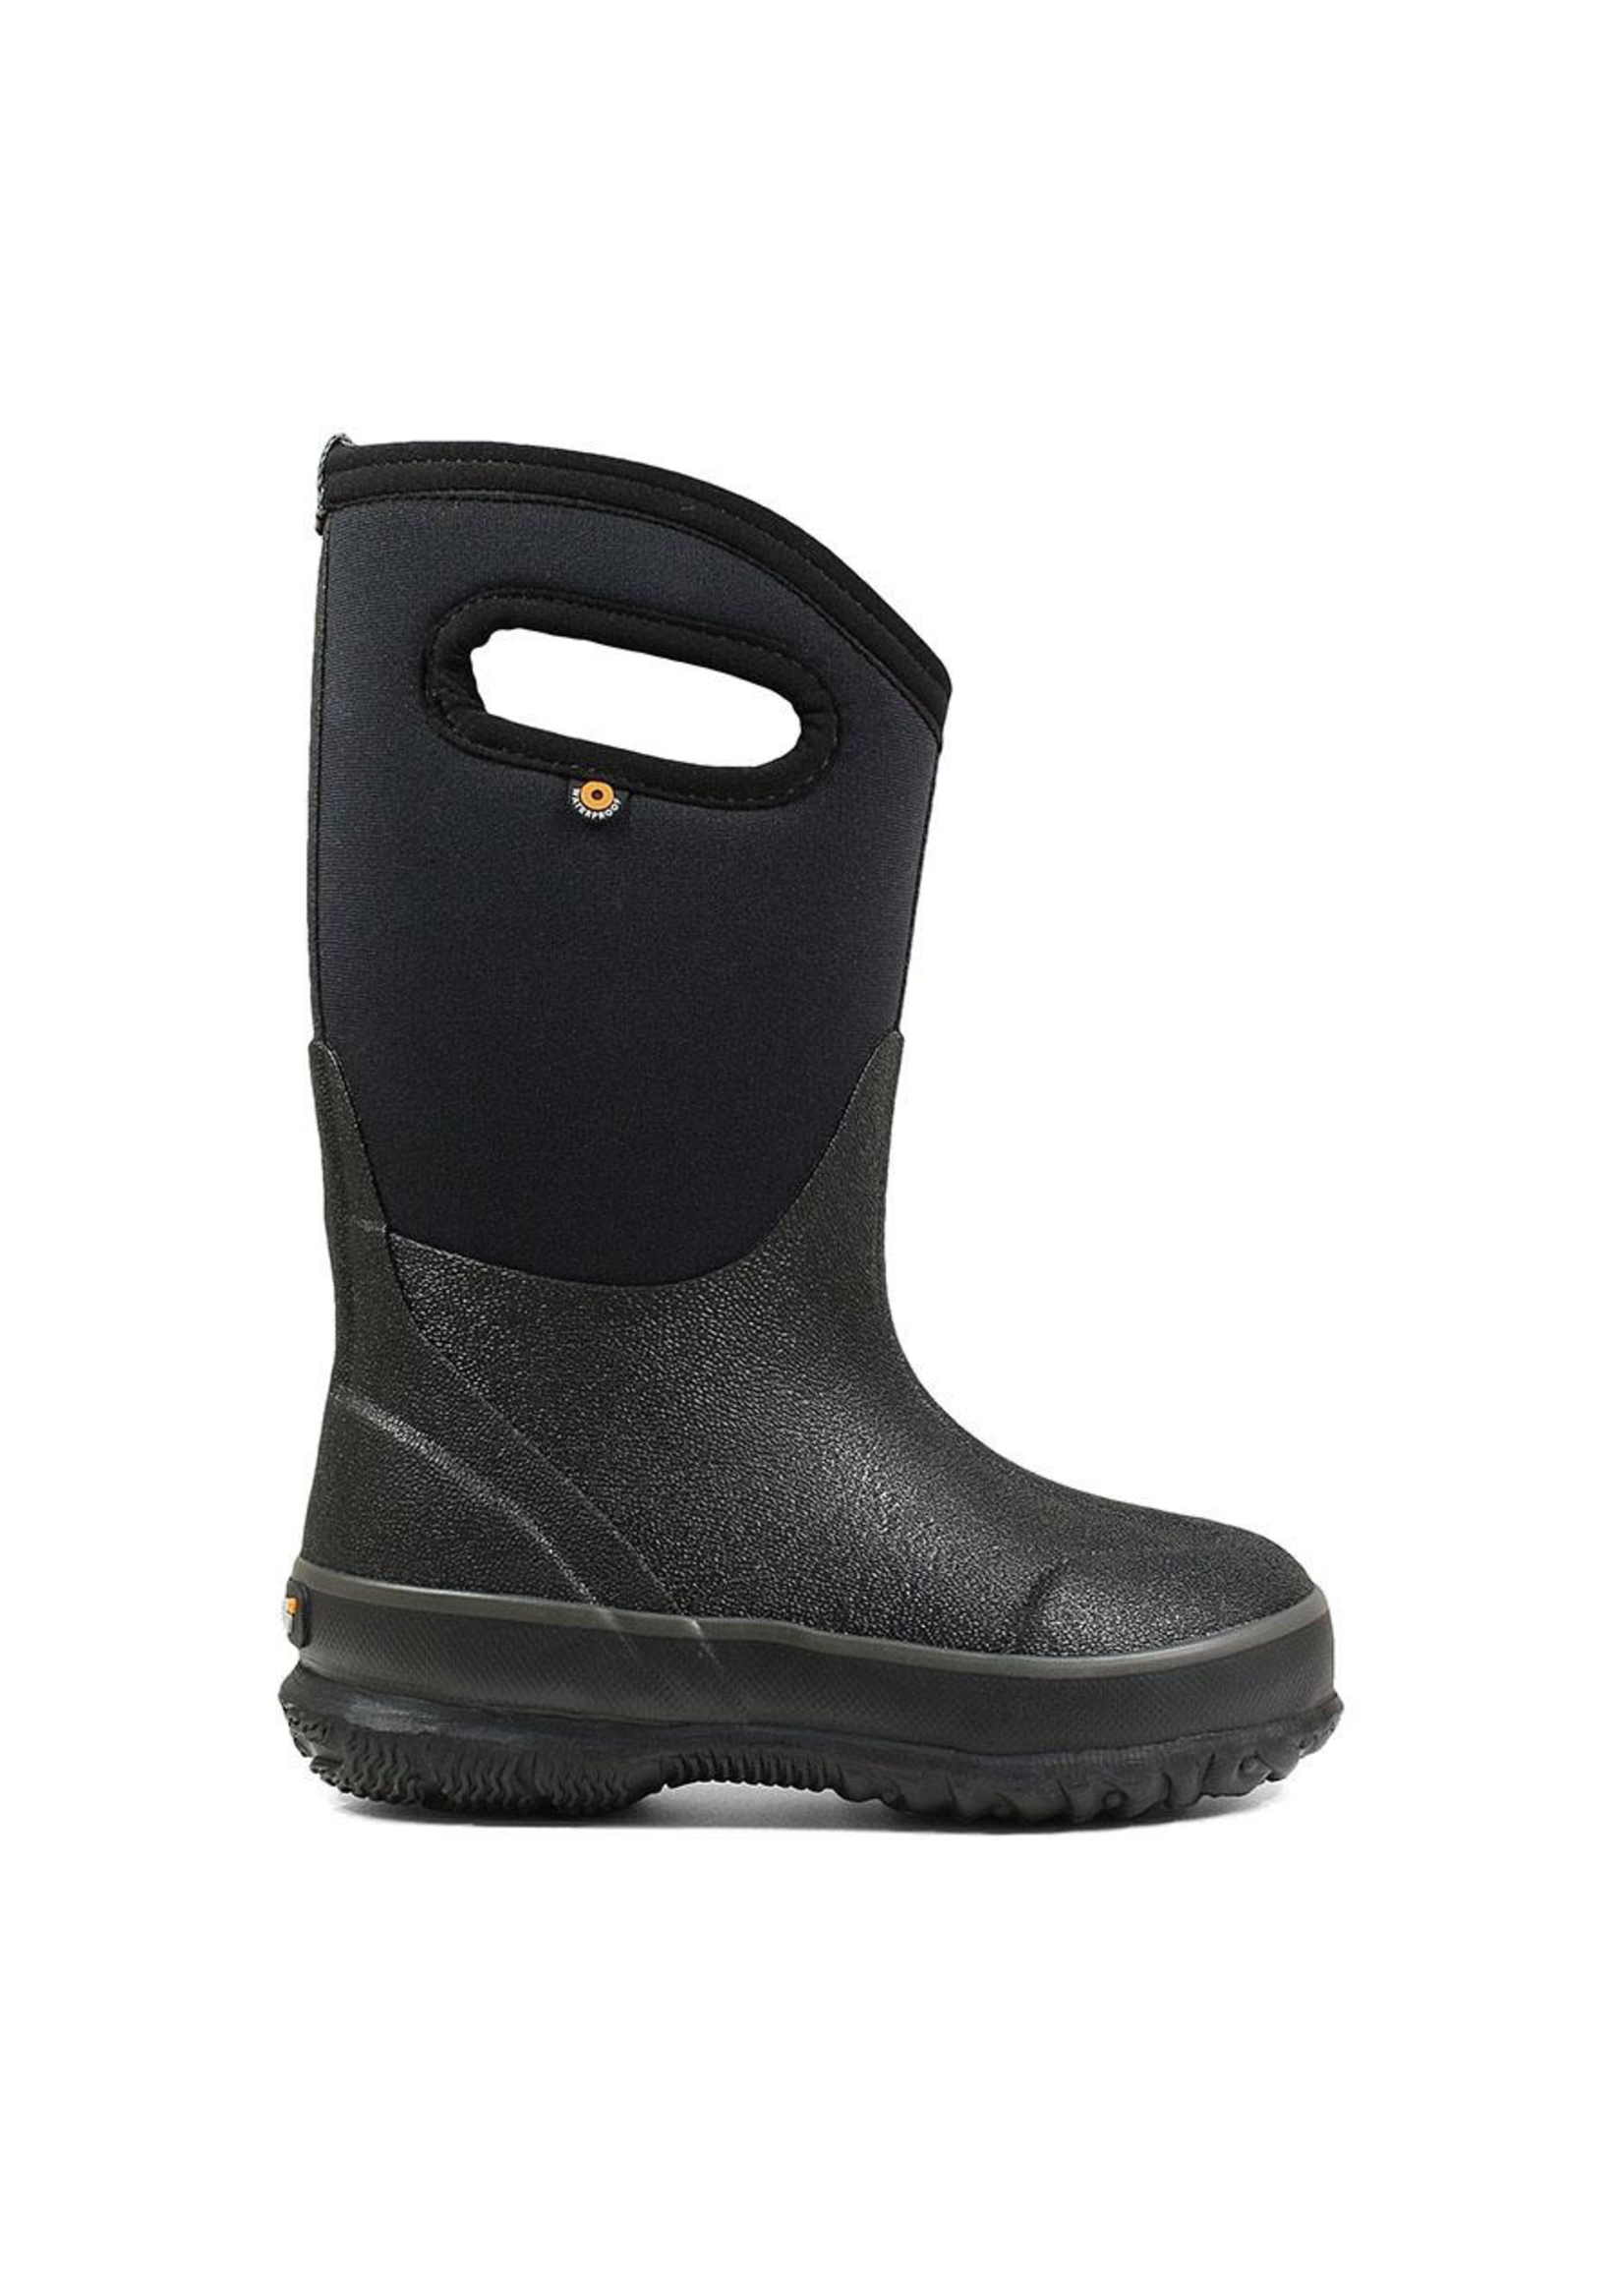 Bogs Bogs, Kids' Classic Solid Insulated Boots